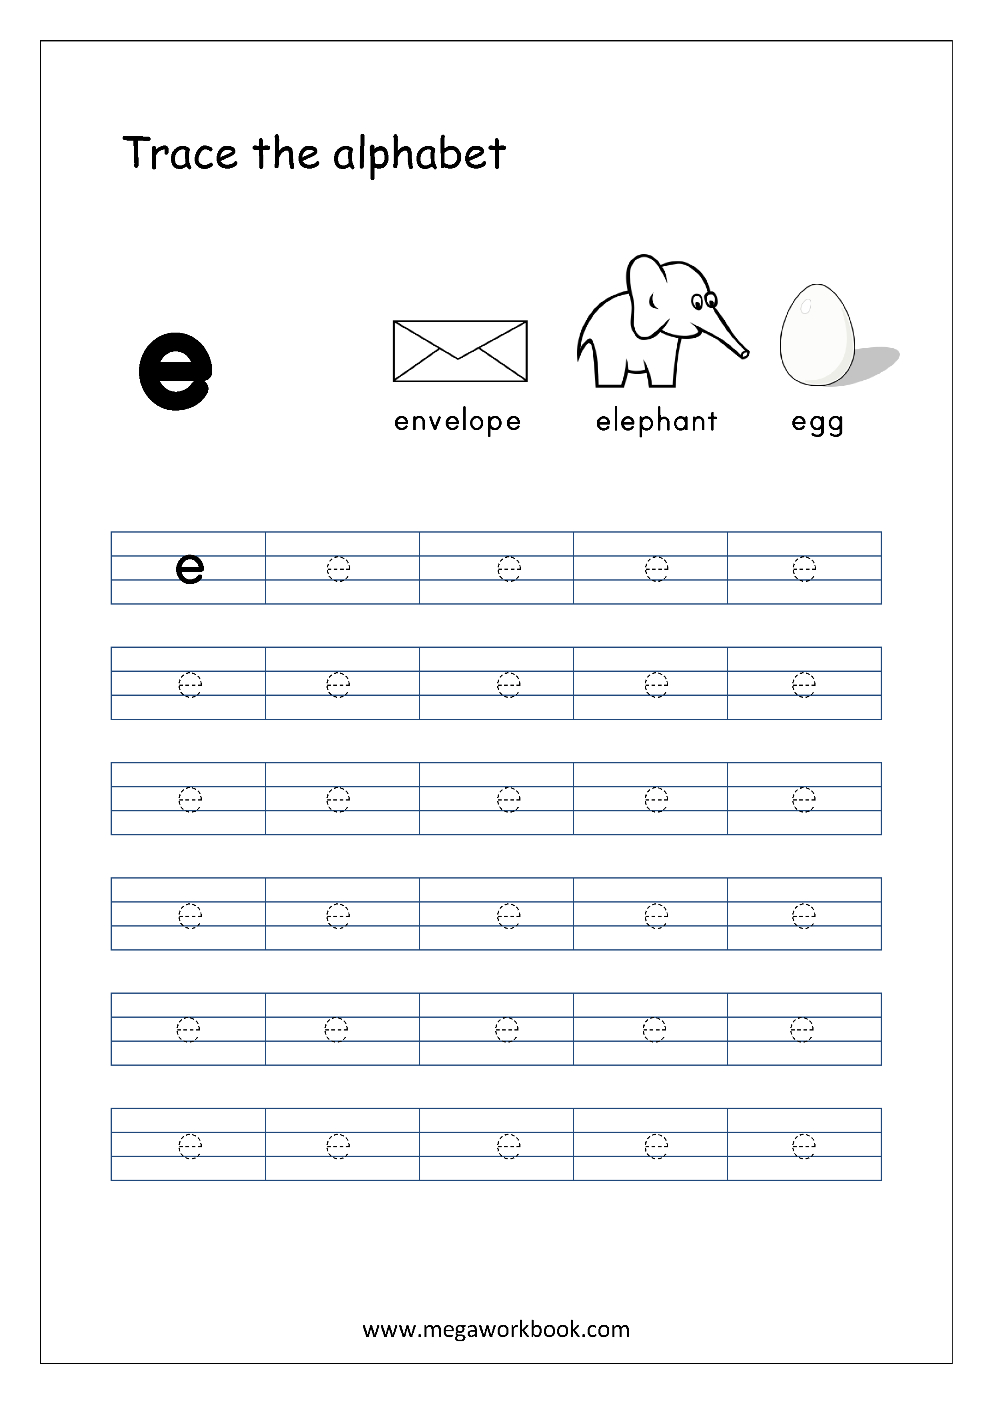 English Worksheet - Alphabet Tracing - Small Letter E in Alphabet Worksheets Letter E